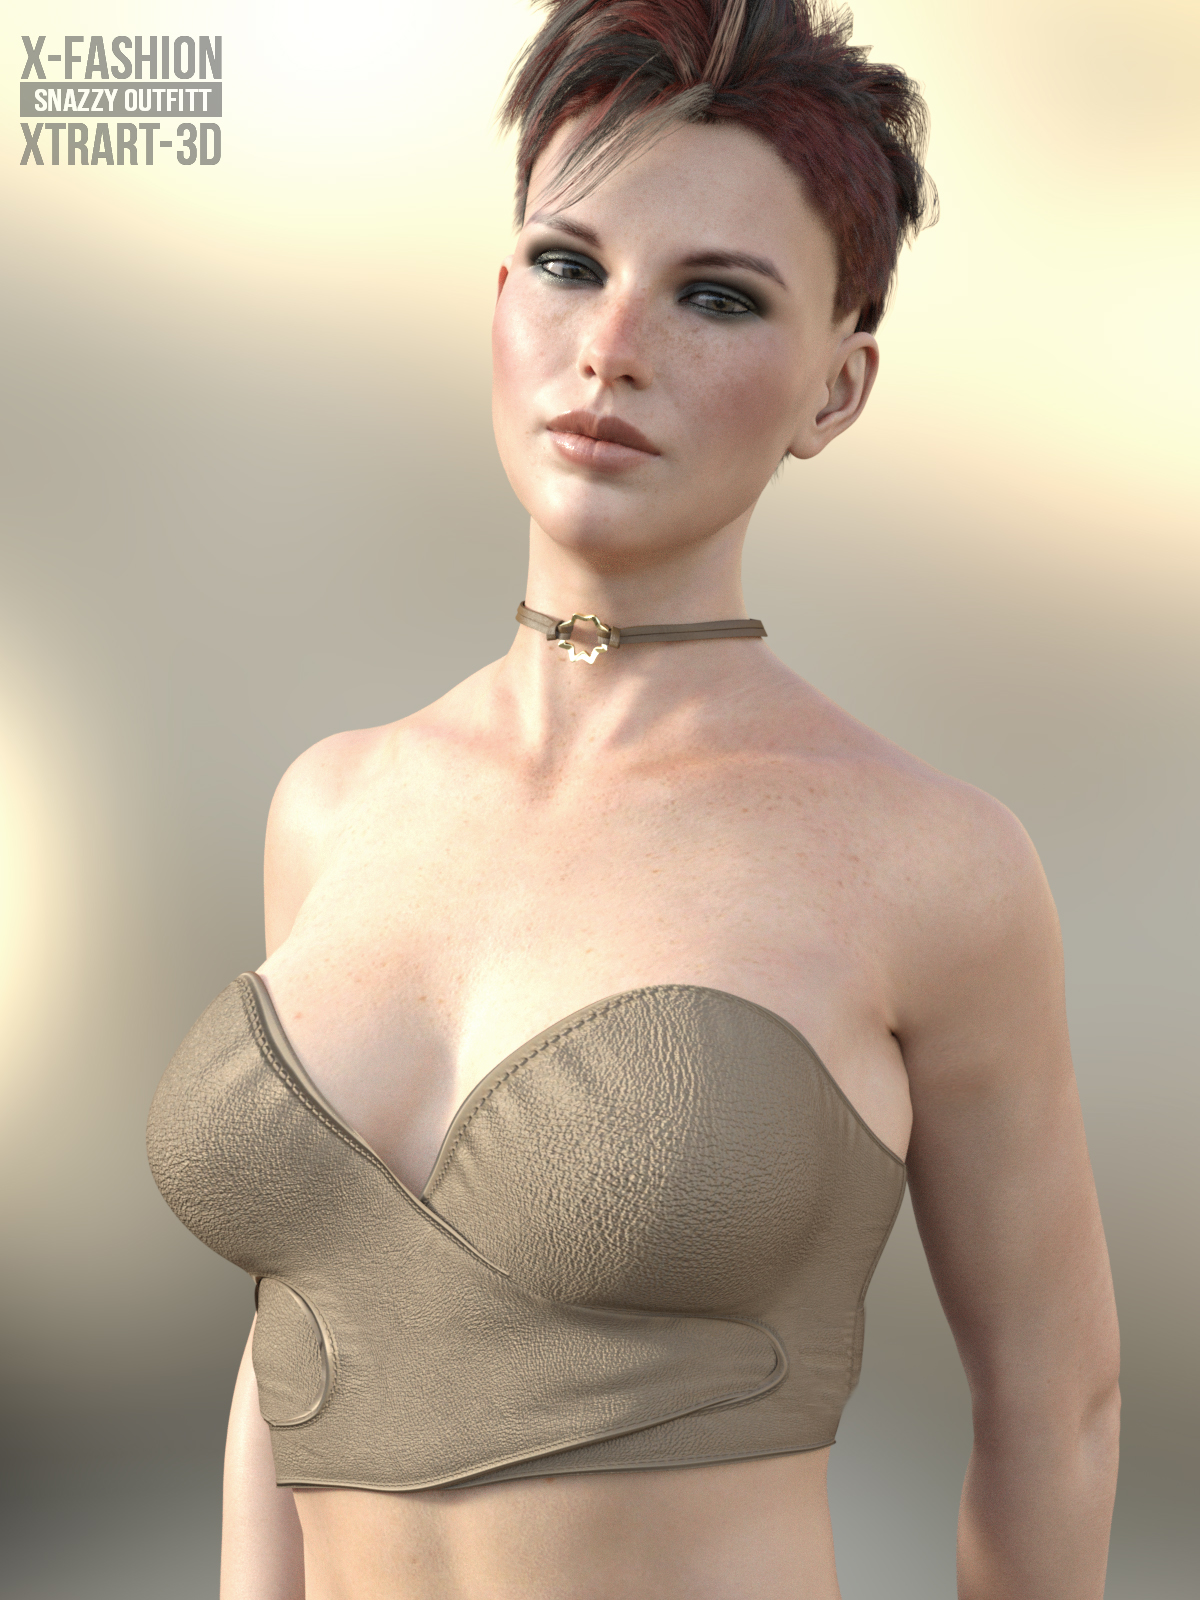 X-Fashion Snazzy Outfit for Genesis 8 Female